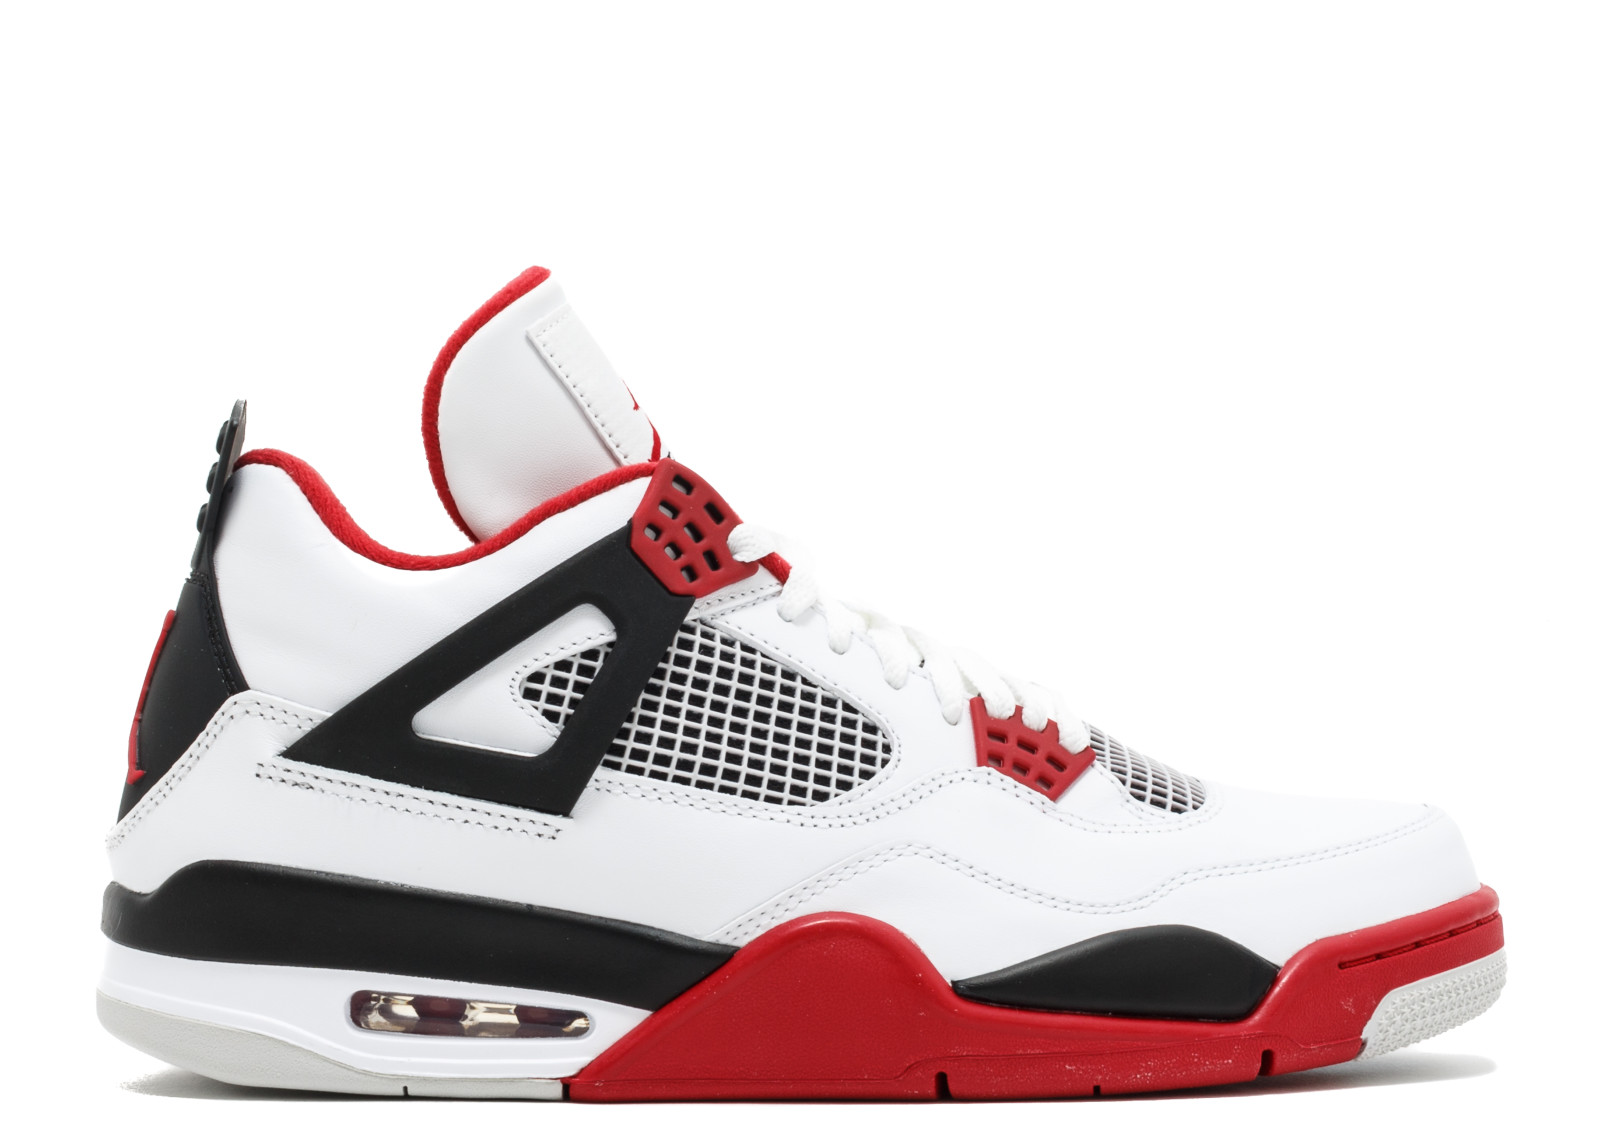 15e90dc38b6a1 Air Jordan 4 Retro Fire Red '2012 Release'- 308497-110 - Size 9.5